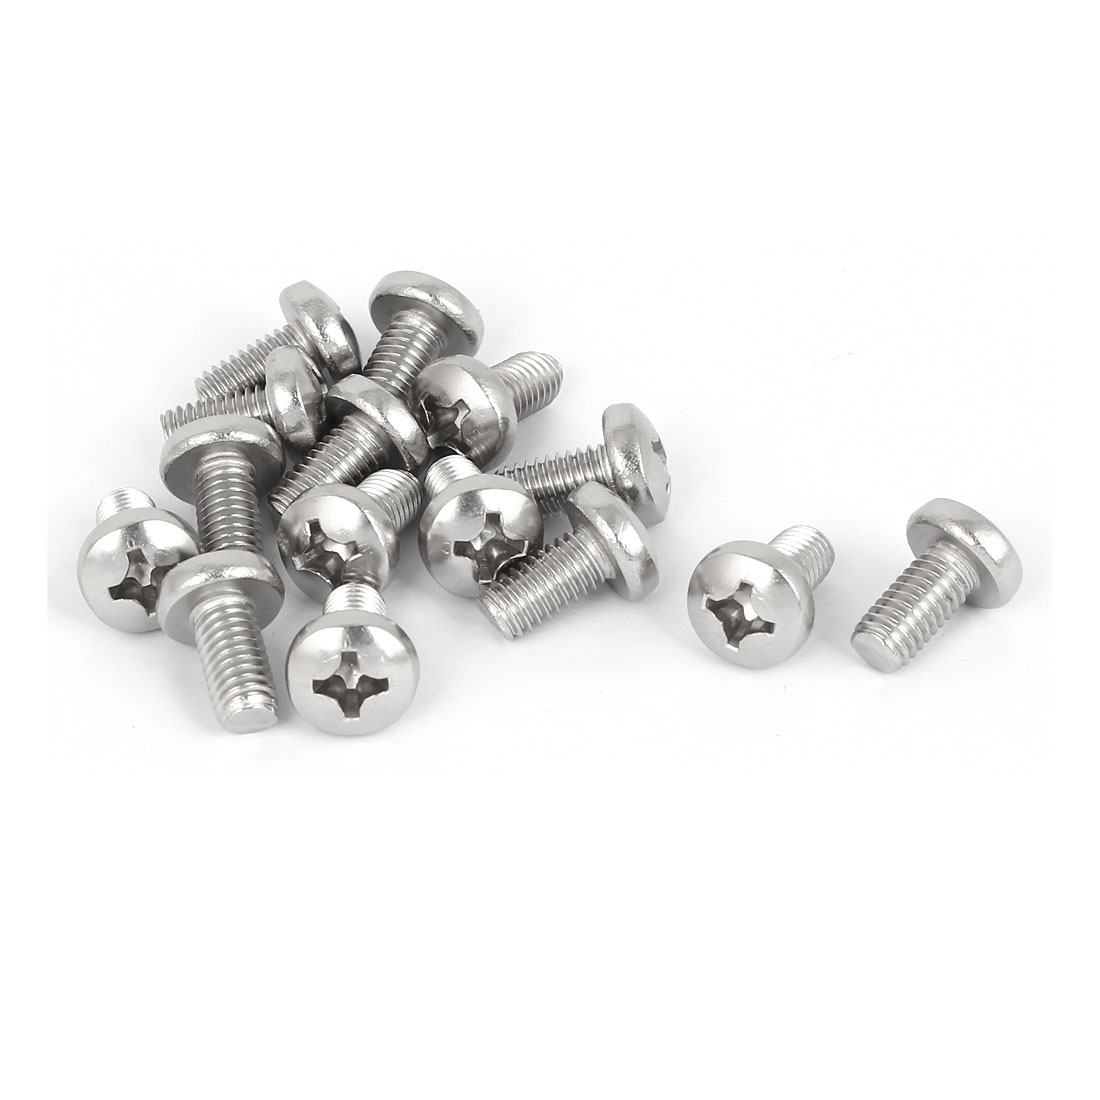 15 Pcs M6x12mm 316 Stainless Steel Phillips Pan Head Machine Screws Silver Tone